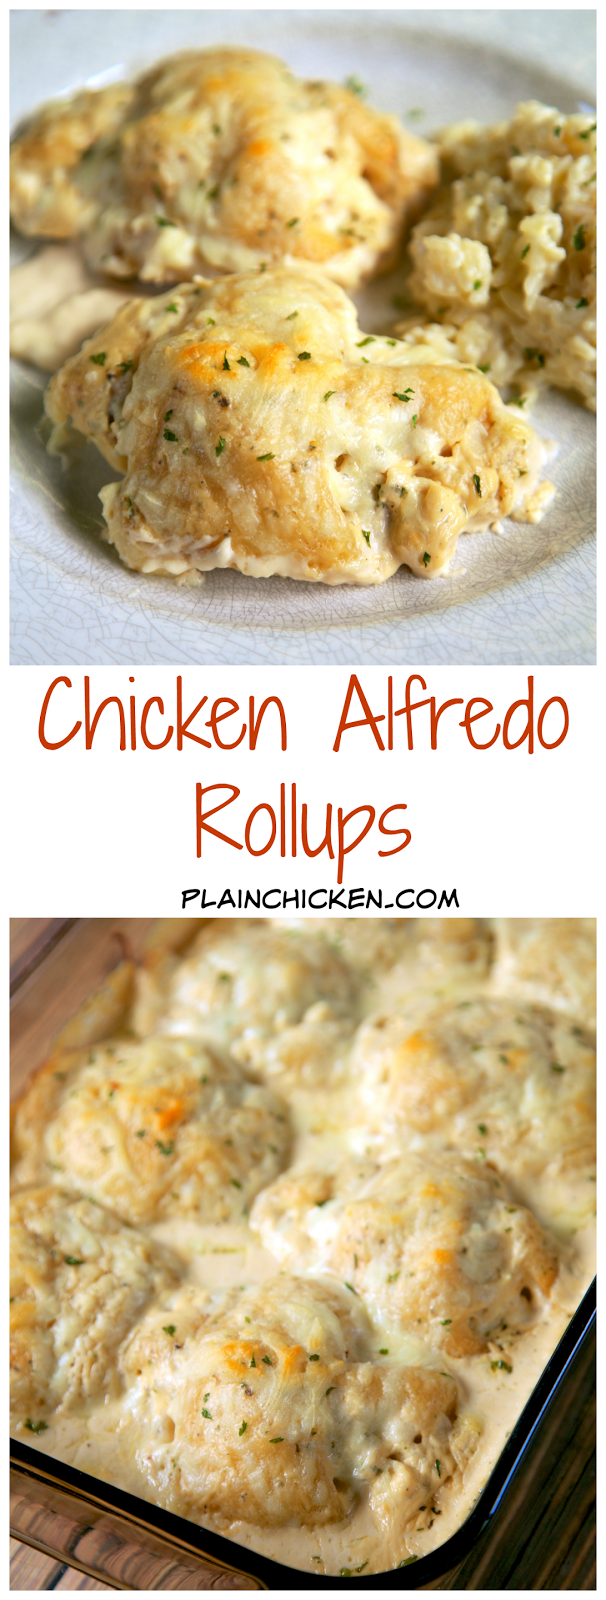 Chicken Alfredo Rollups Recipe - chicken, cream cheese, garlic powder, mozzarella, wrapped in crescent rolls and baked in Alfredo sauce. SO good. Serve with pasta/rice and salad or green beans. Quick weeknight meal!